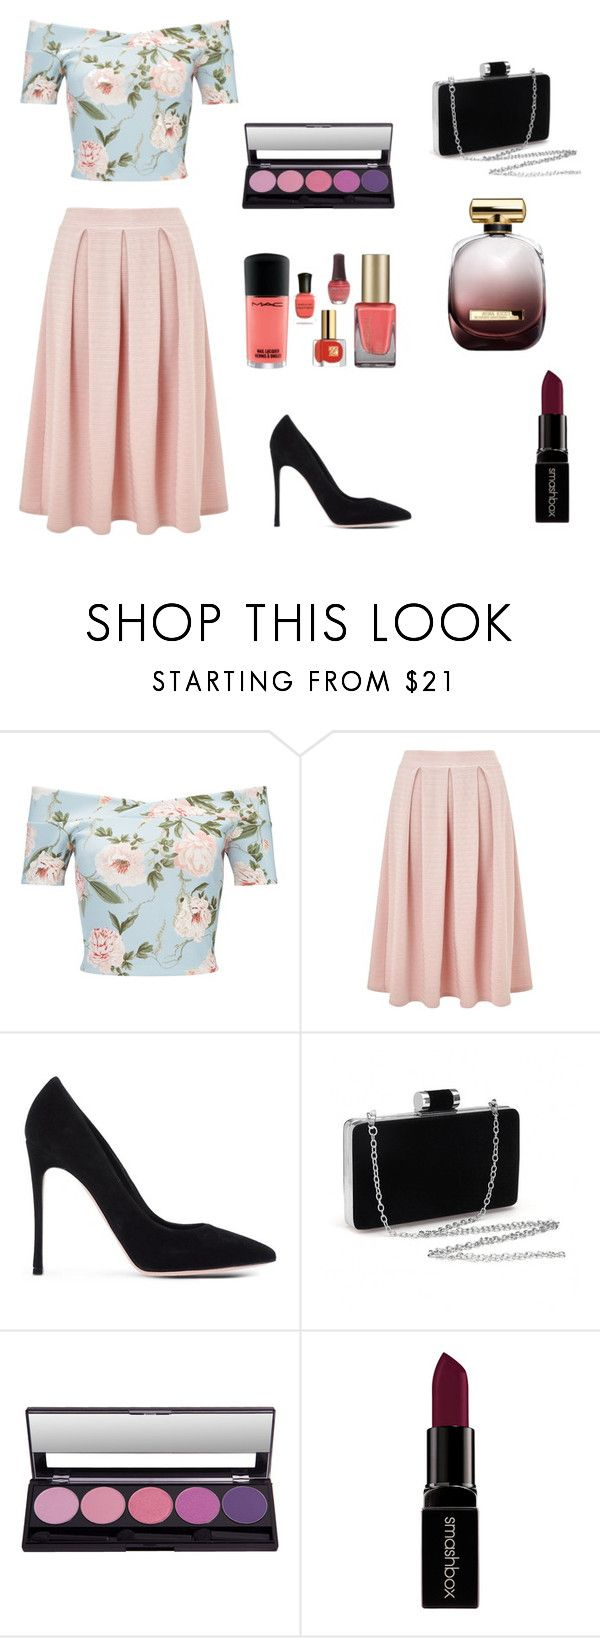 """""""Pink and Black"""" by dianacrystal on Polyvore featuring мода, Miss Selfridge, Gianvito Rossi, Smashbox и Nina Ricci"""